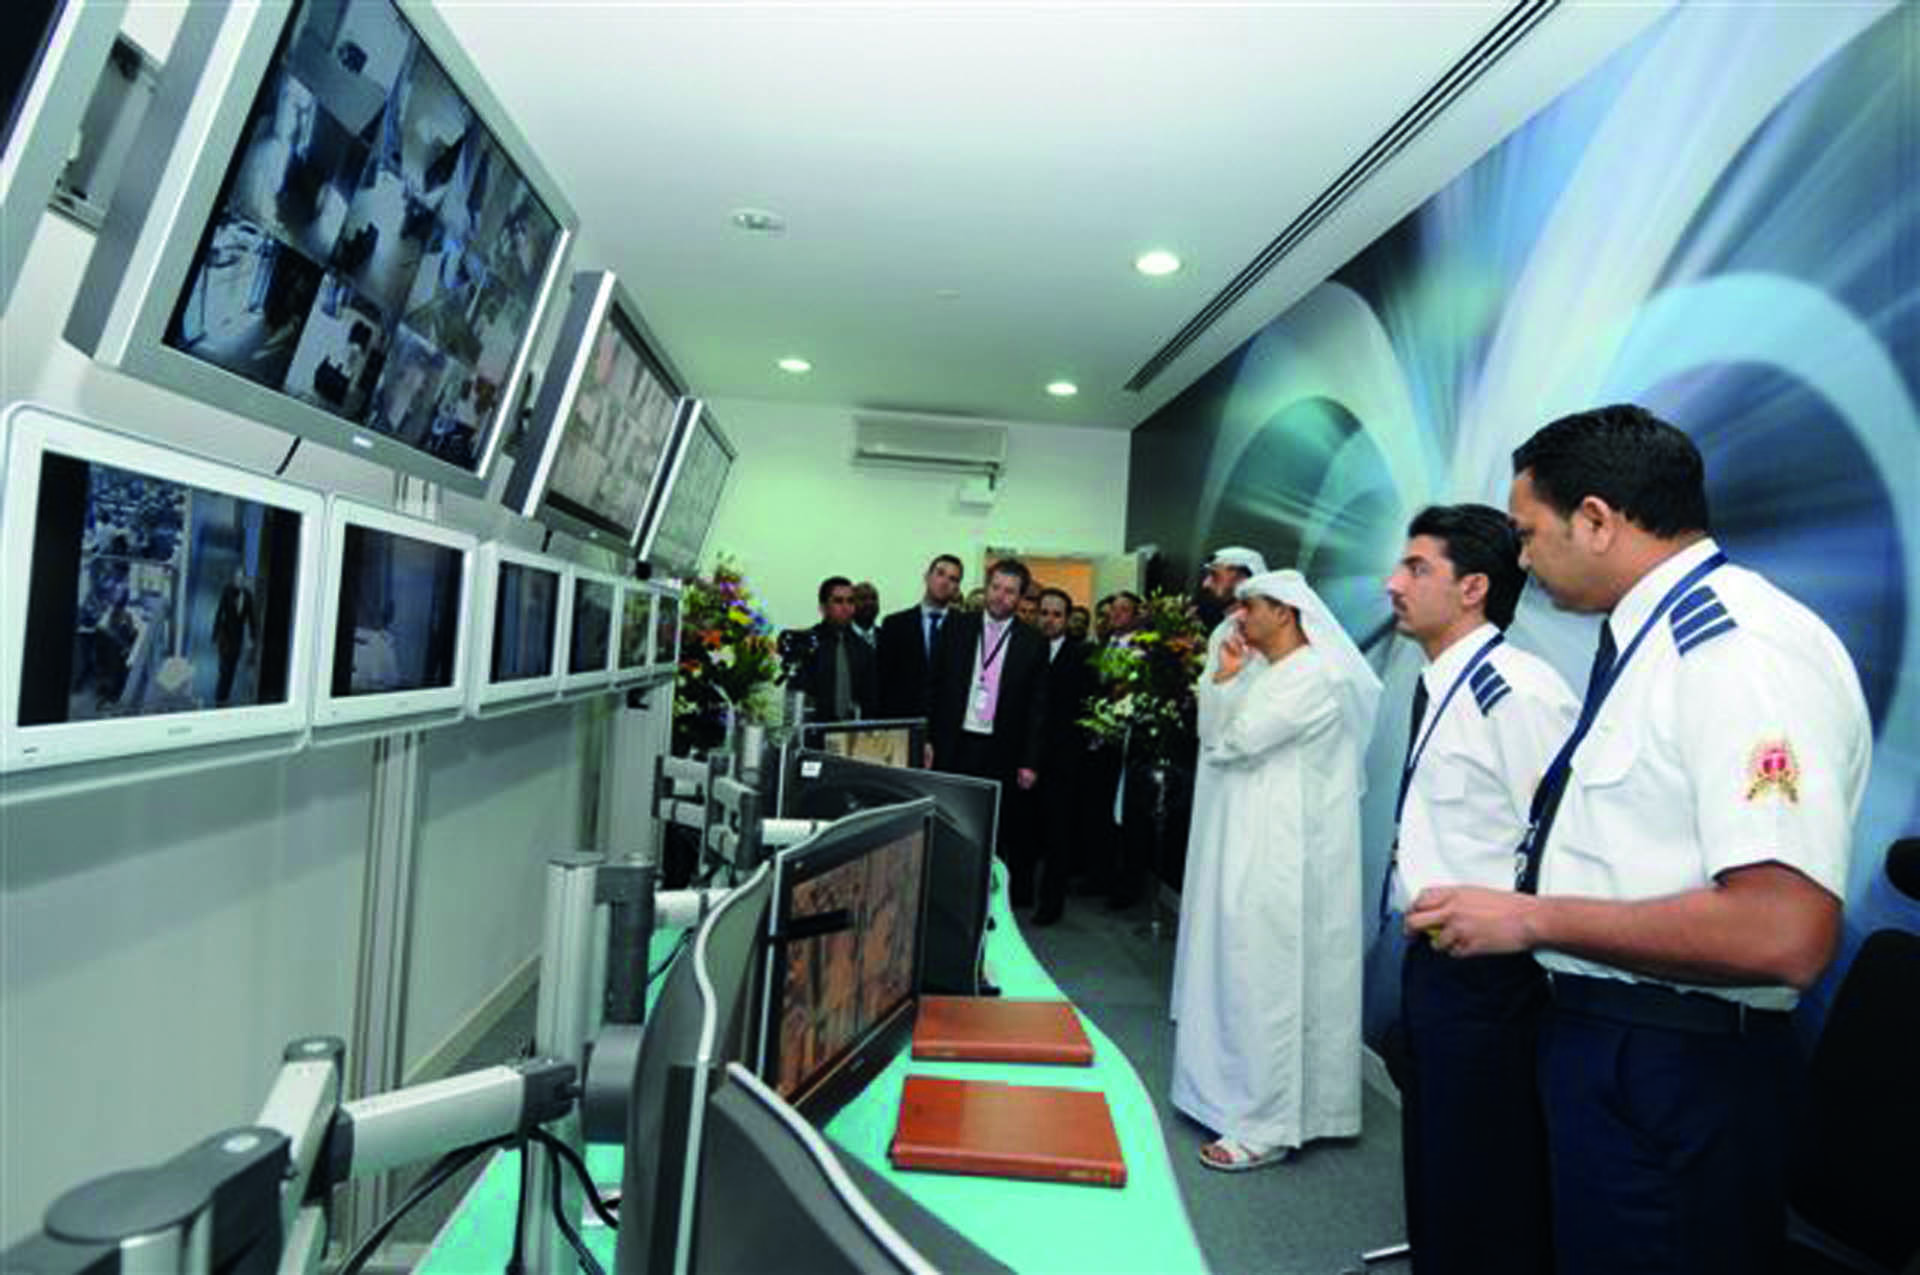 control room furniture middle east